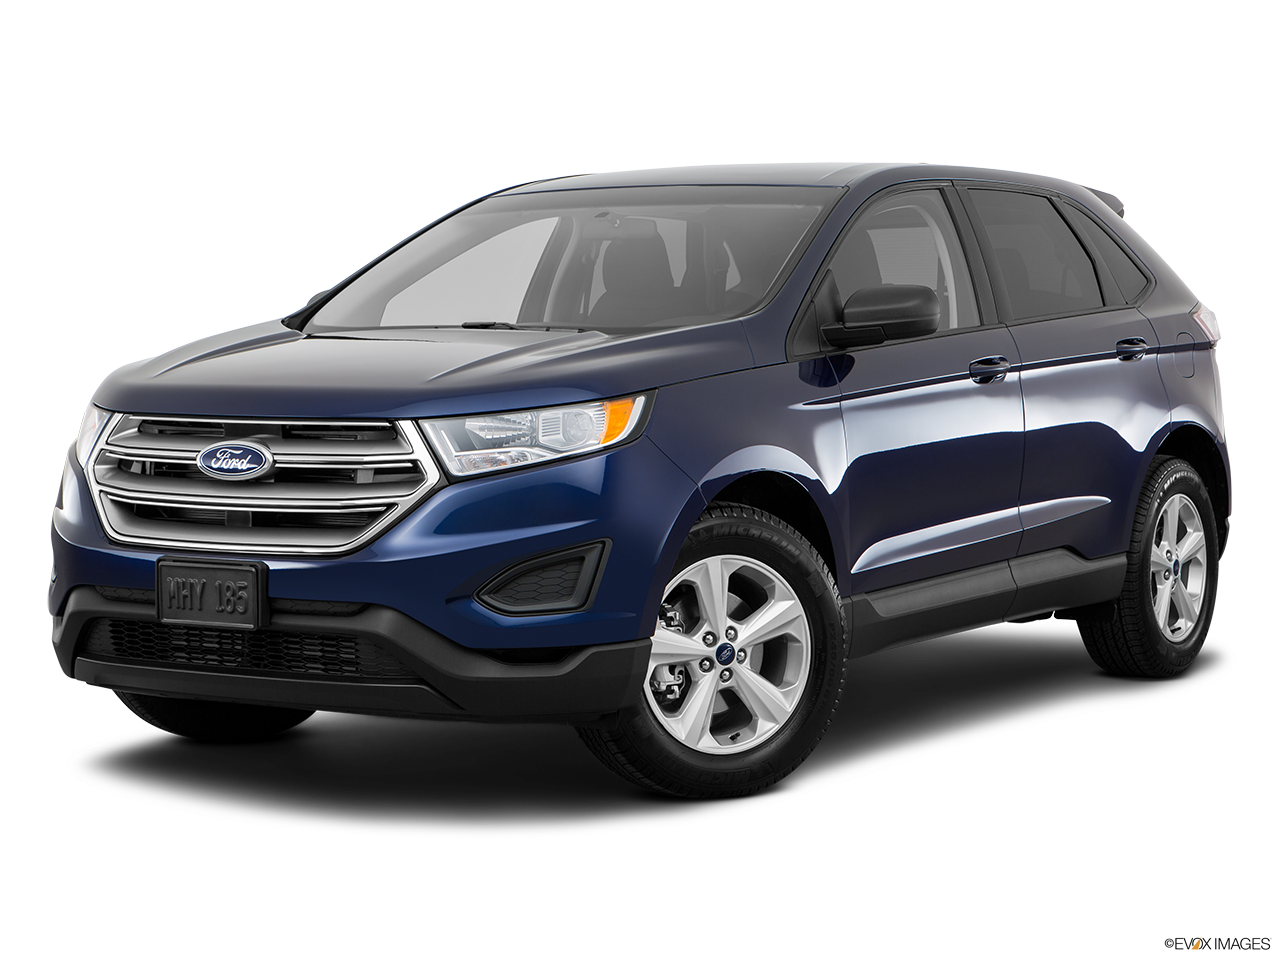 2016 ford edge syracuse romano ford. Black Bedroom Furniture Sets. Home Design Ideas